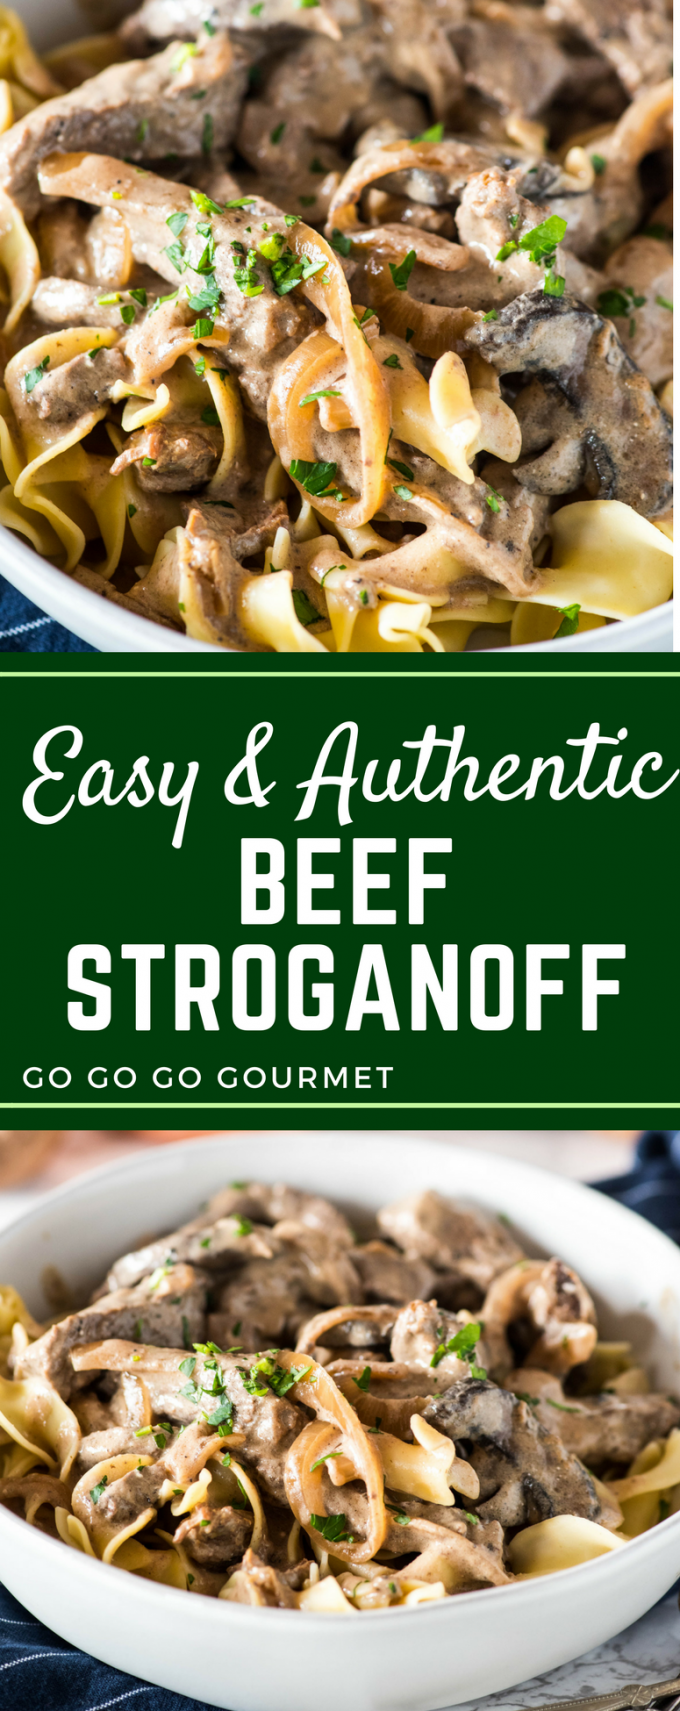 This easy homemade beef stroganoff is the best authentic recipe out there! Ready in under 30 minutes, you can use a variety of beef cuts depending on your budget.